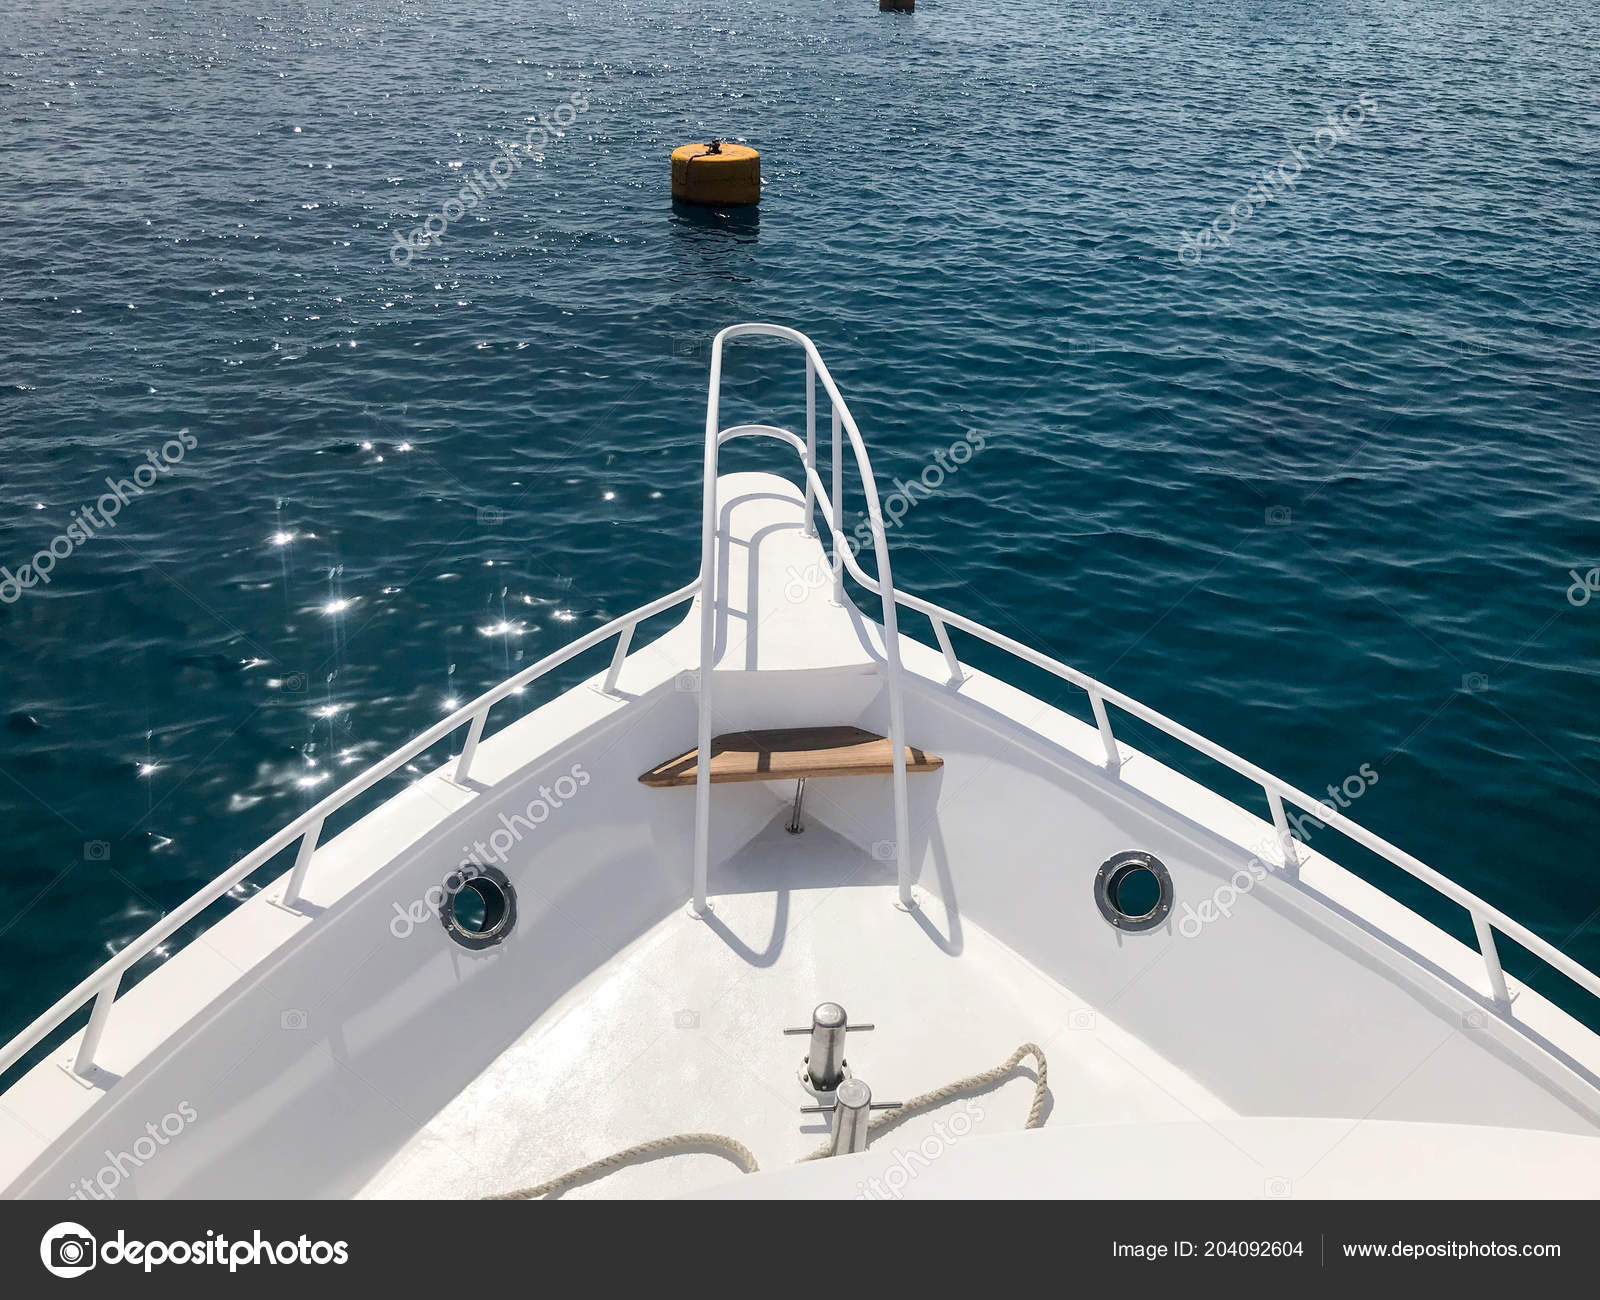 Bow Of A Boat >> Stem Front Bow Ship Boat Cruise Liner Background Buoys